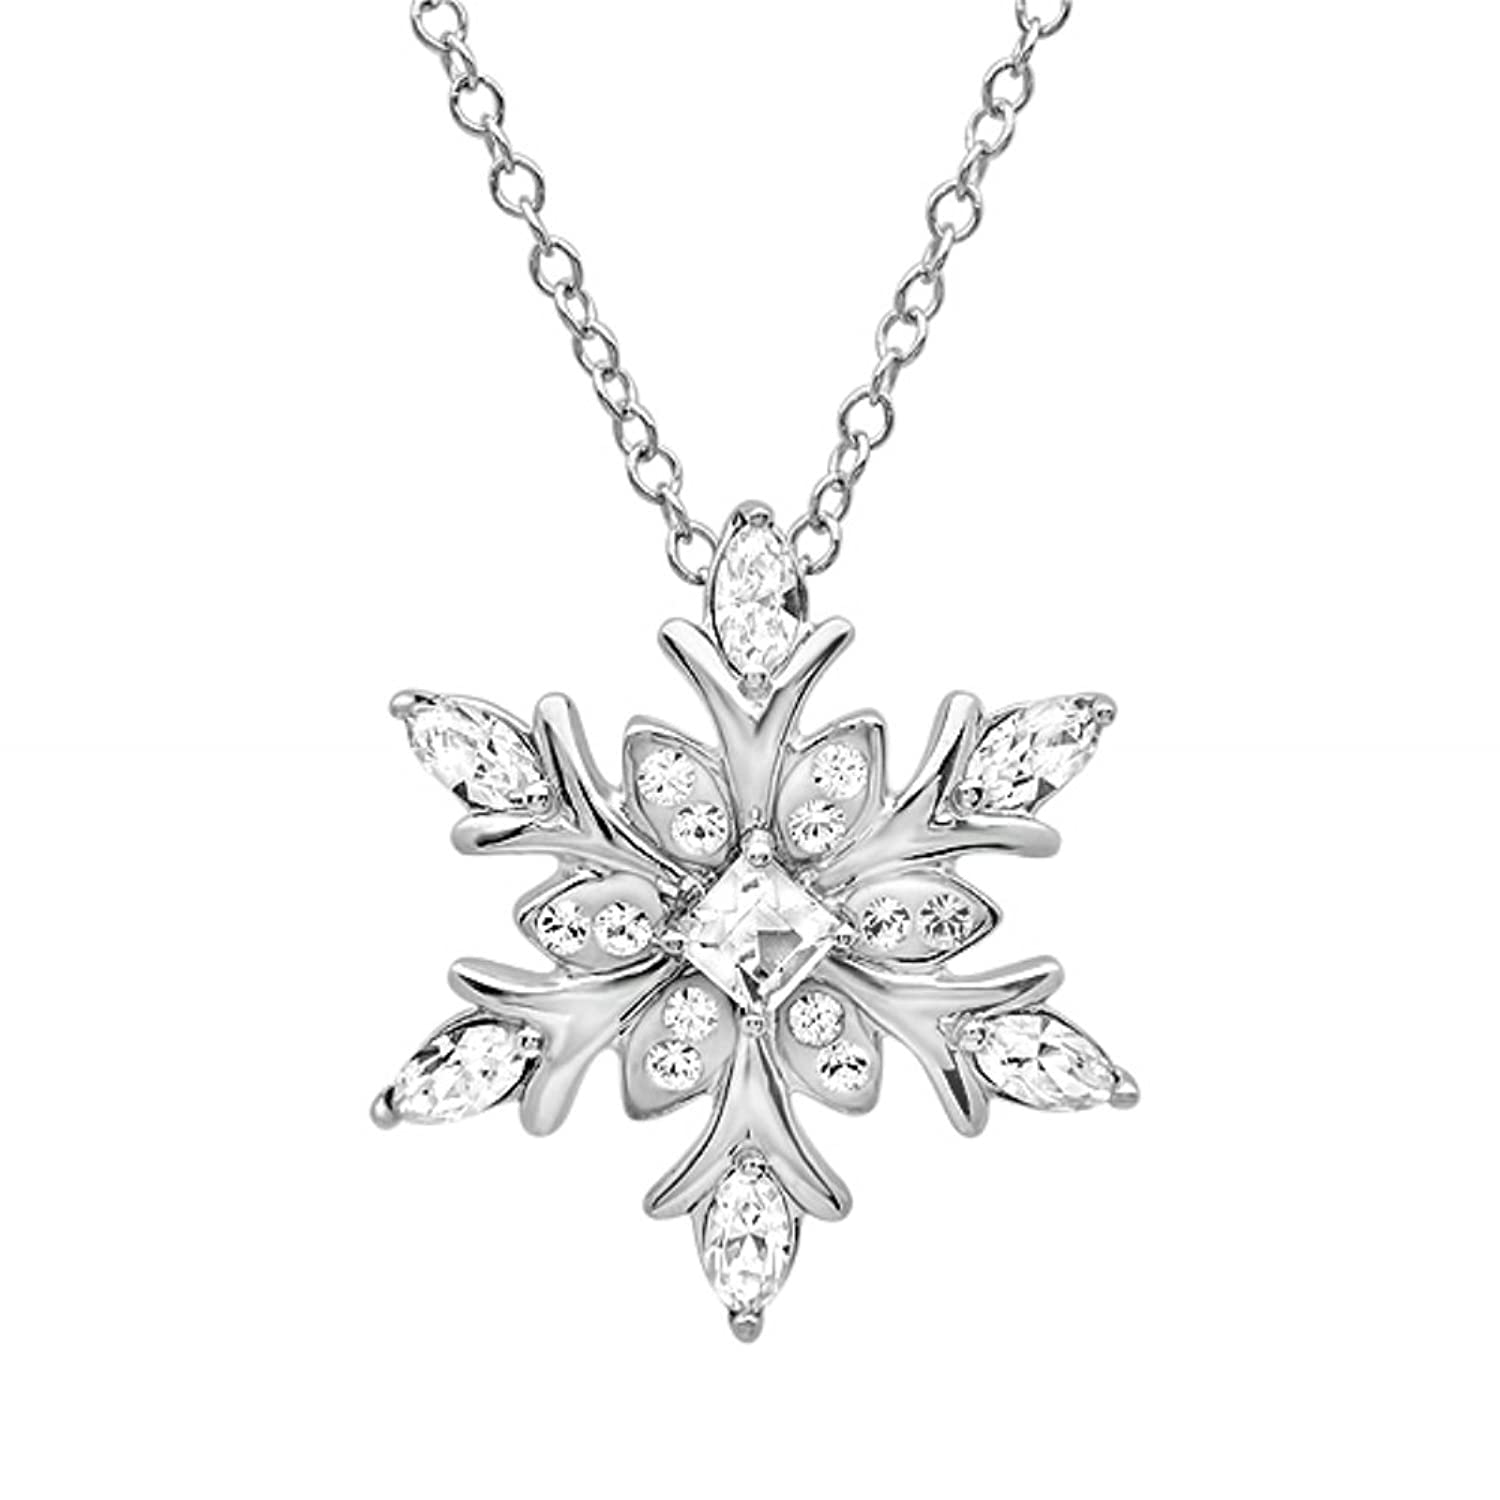 clear nkc product necklace main snowflake shop amrita singh gold jewelry